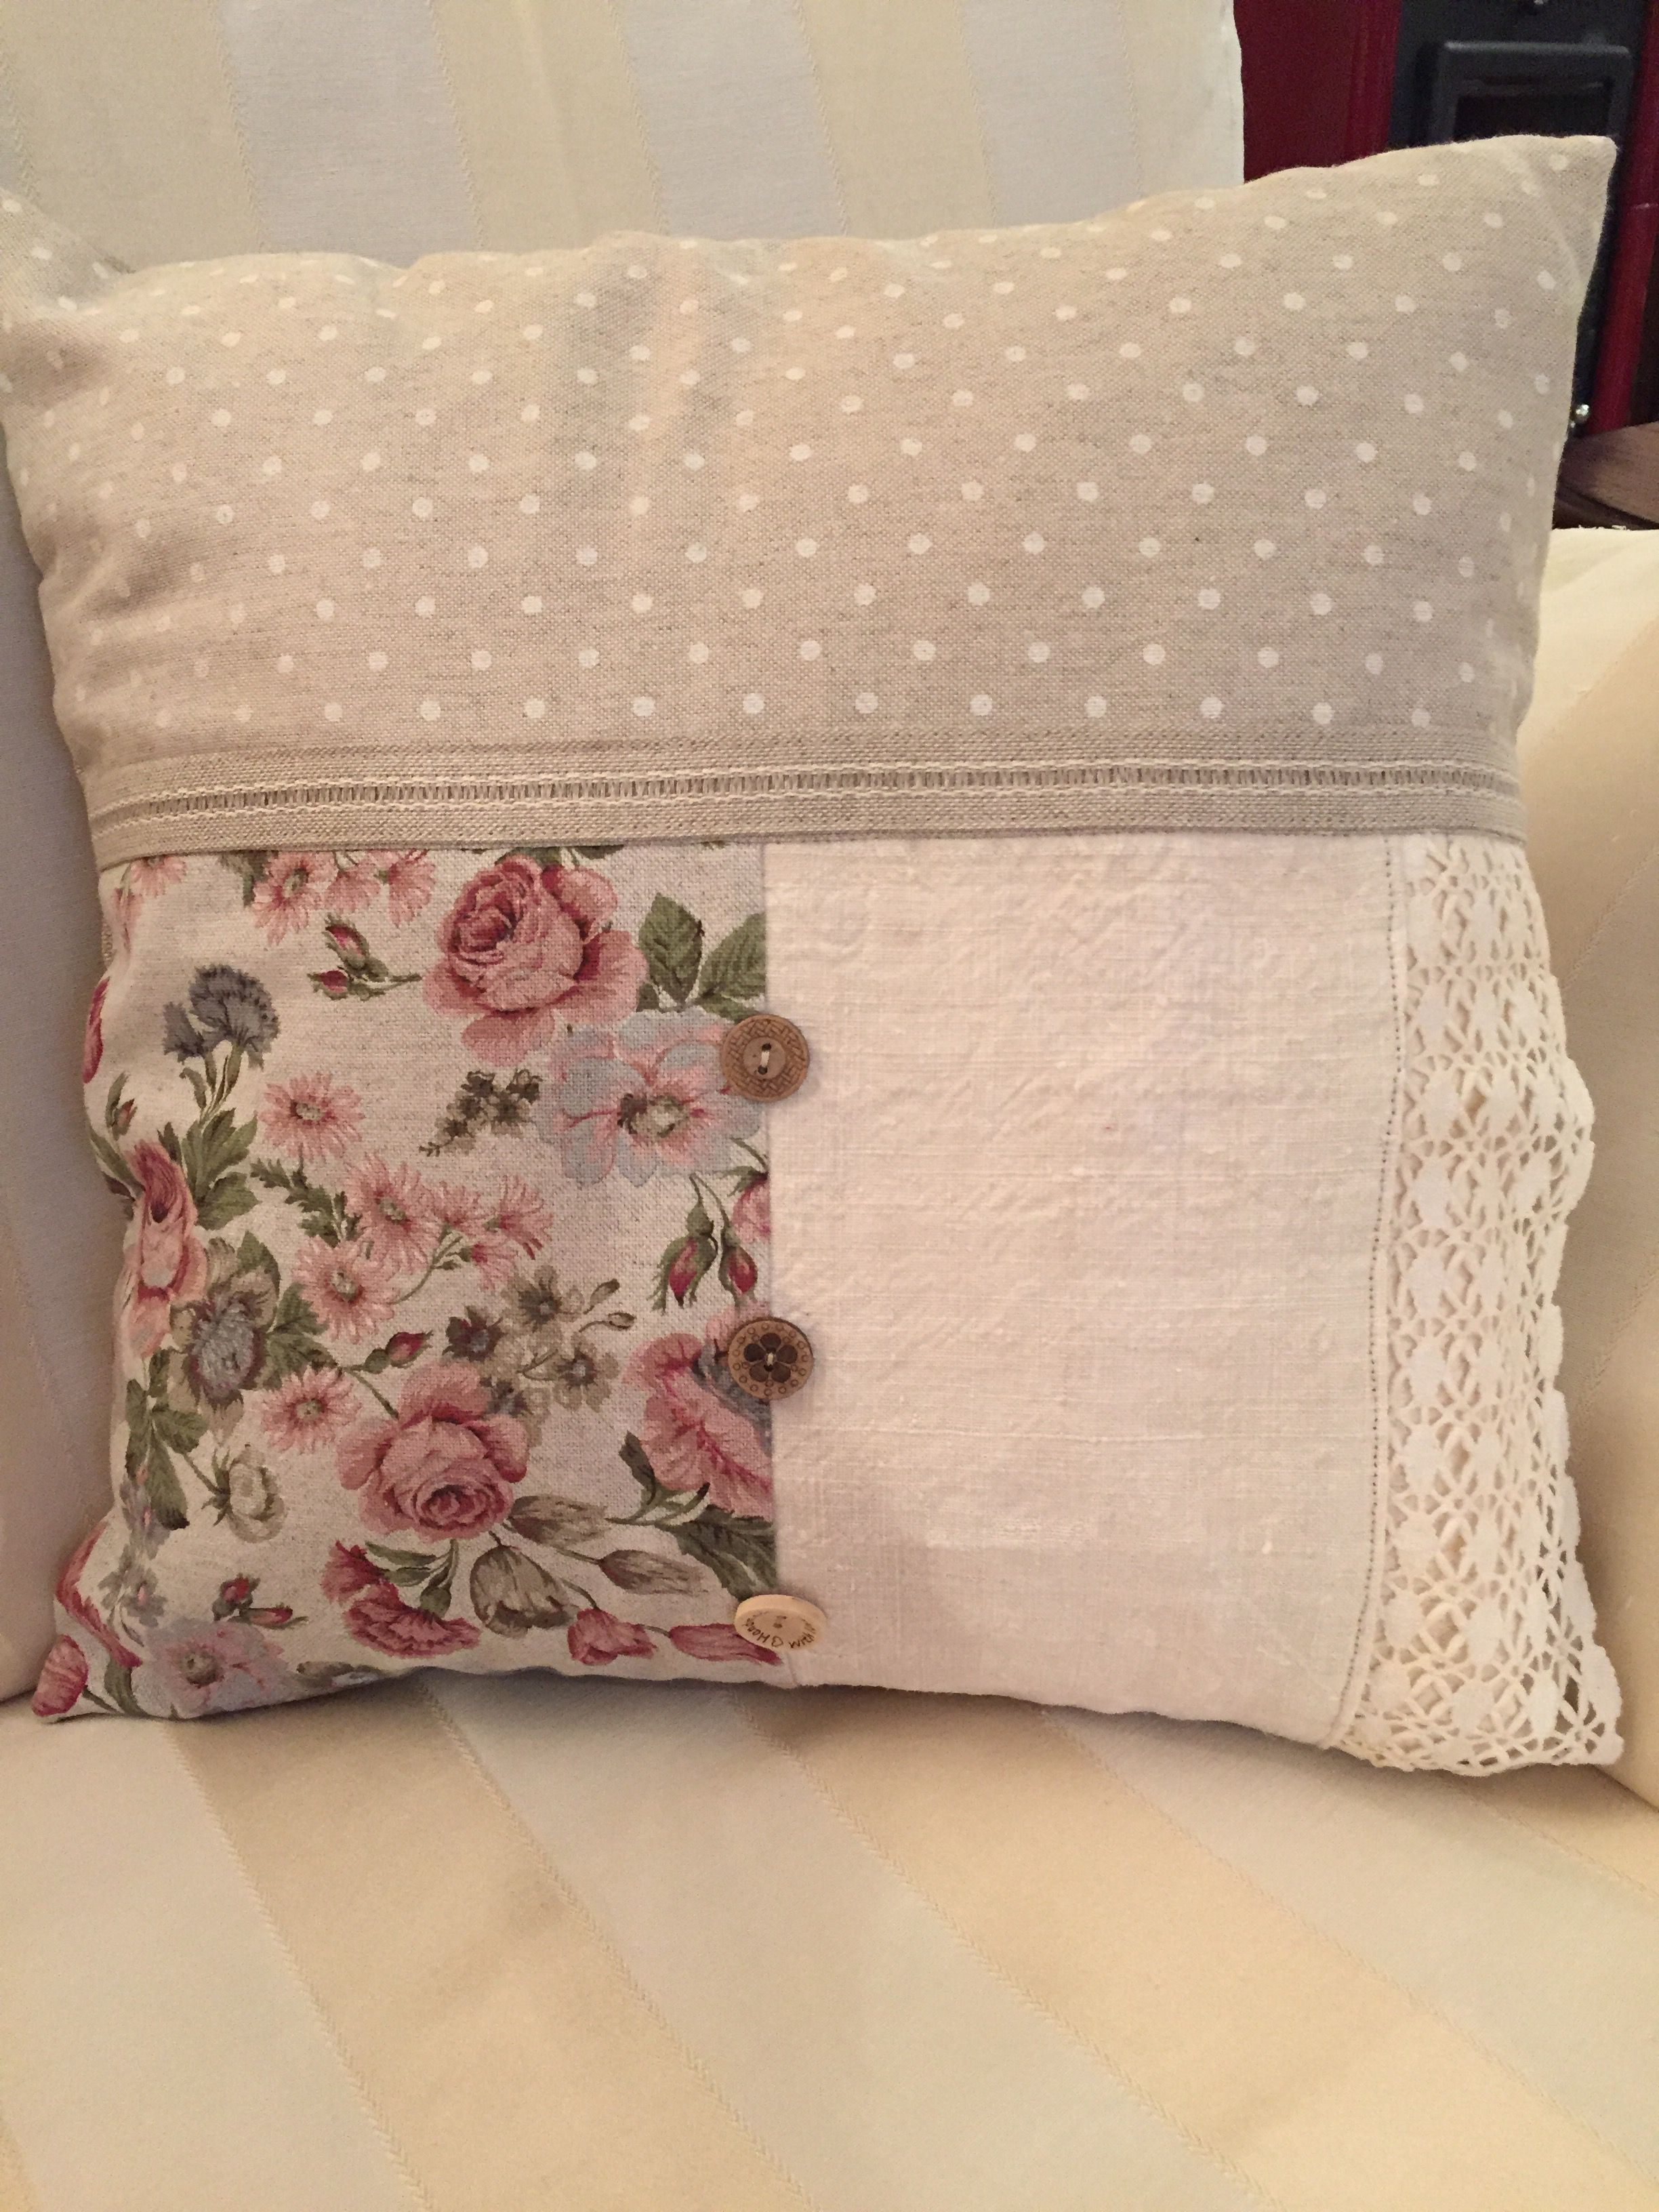 flowers lace cotton pillow beige flax zip white pink buttons square mixed floreal pois